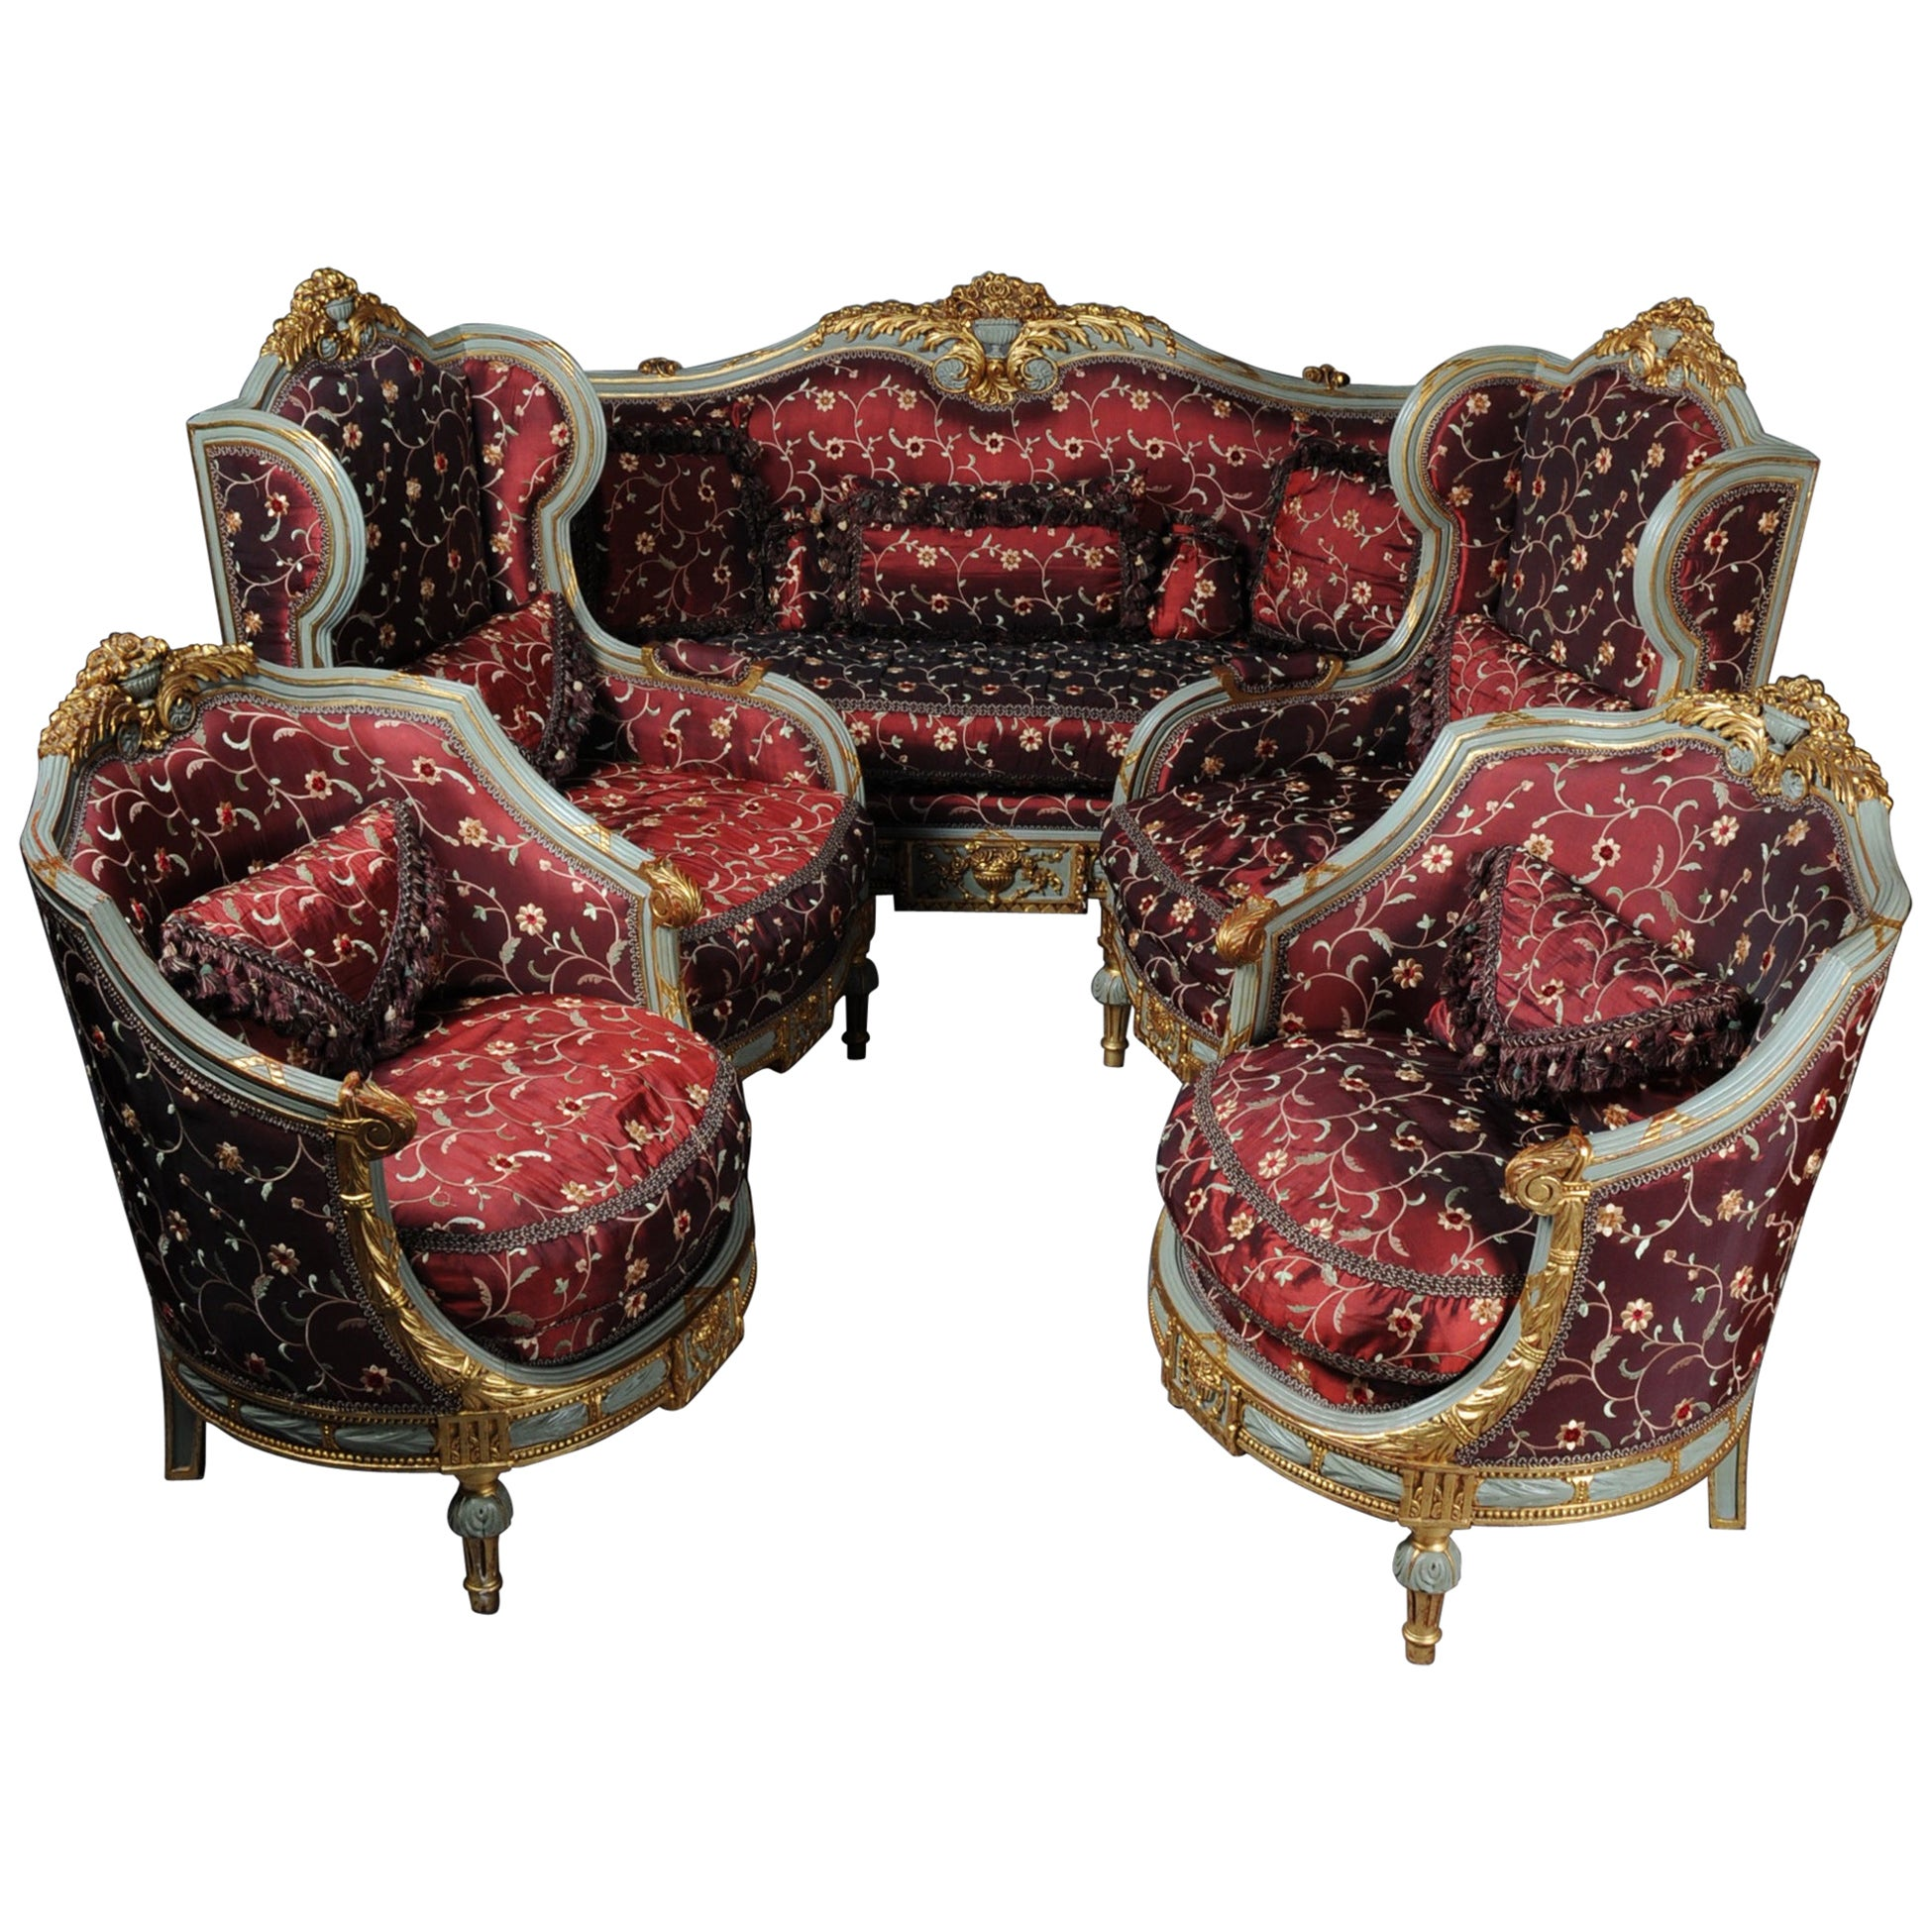 20th Century Unique French Salon Seating Group in Louis XVI Style